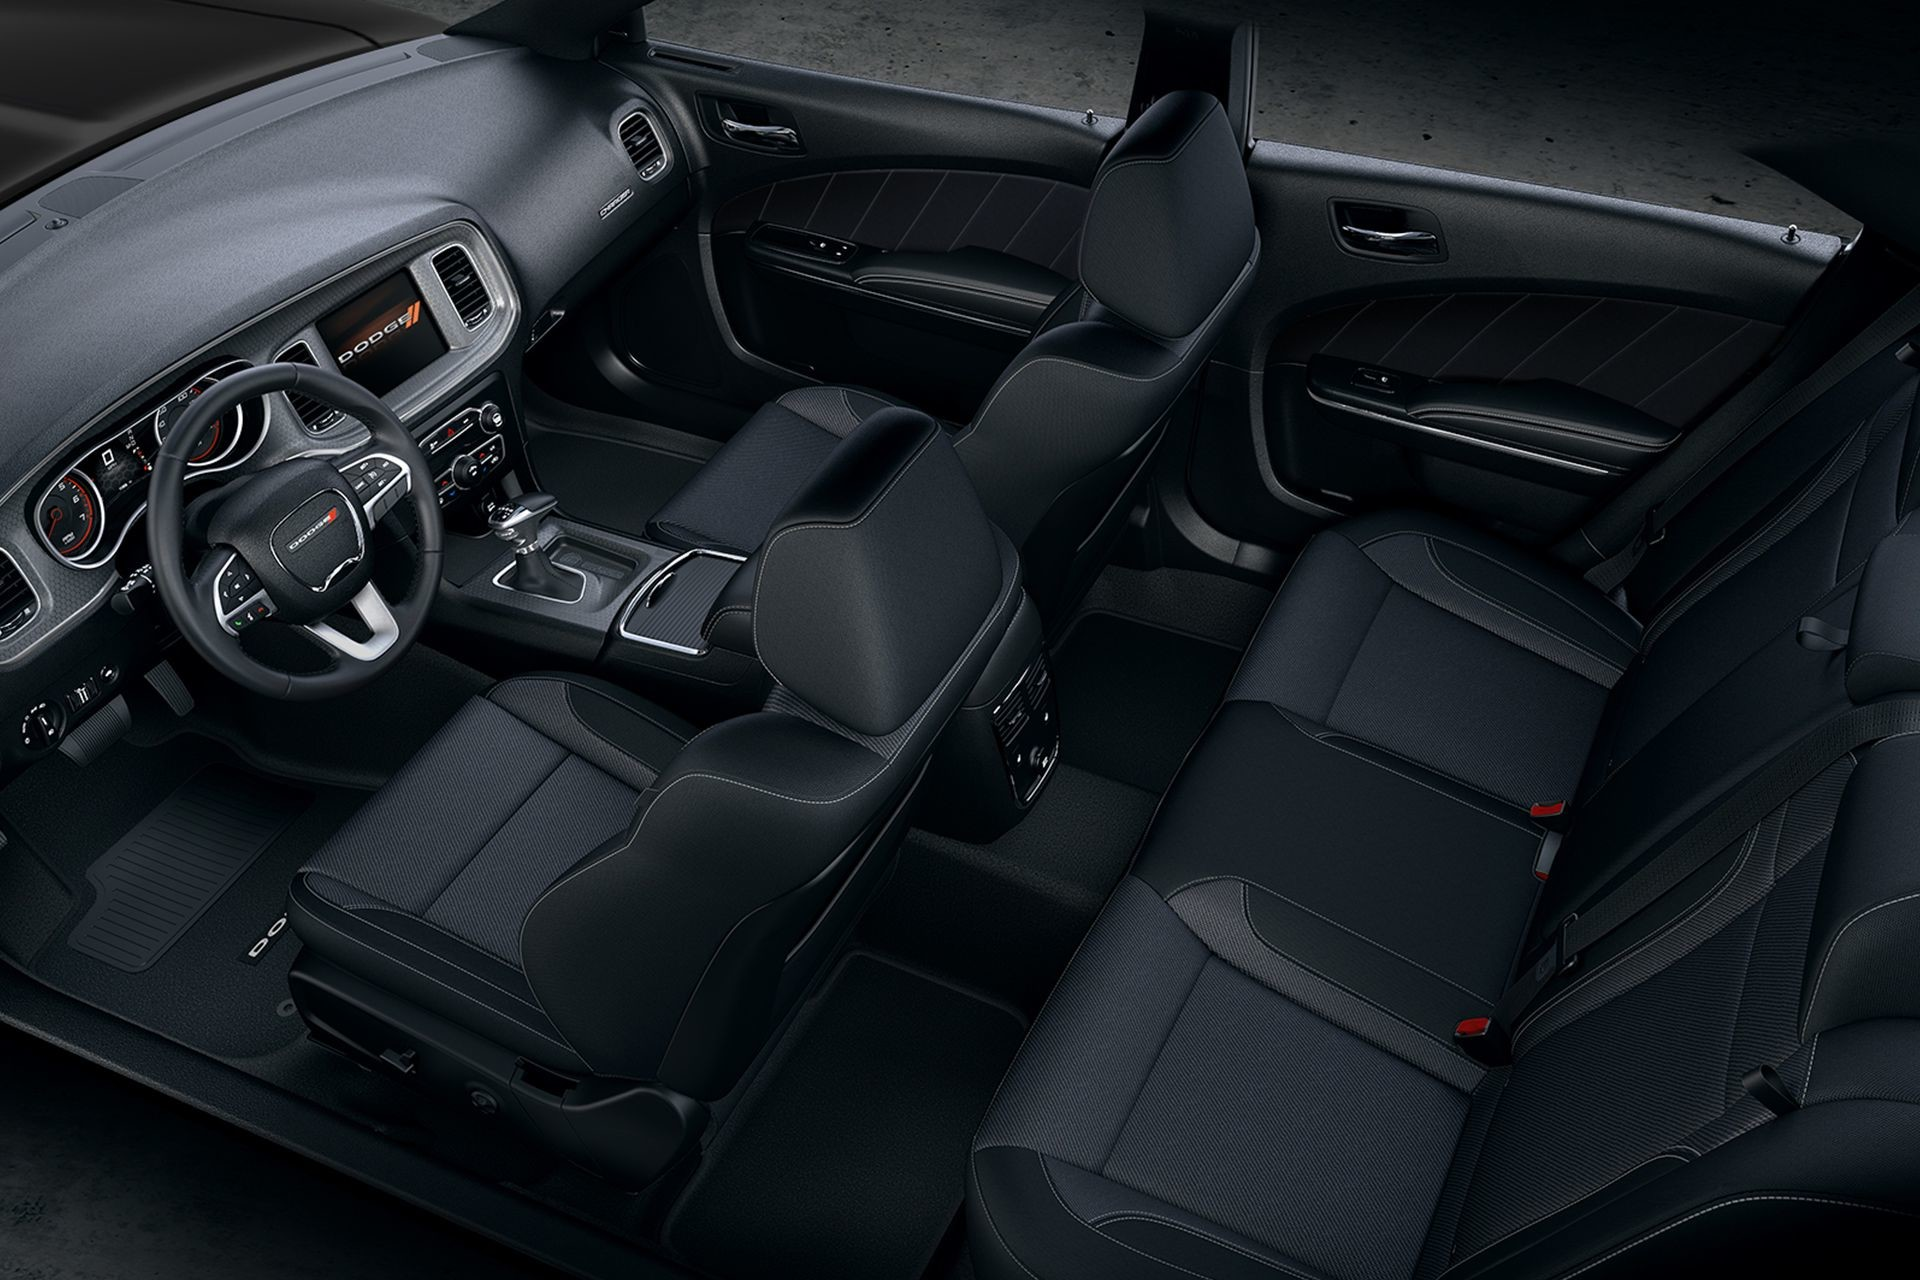 2019 Dodge Charger premium modern interiors